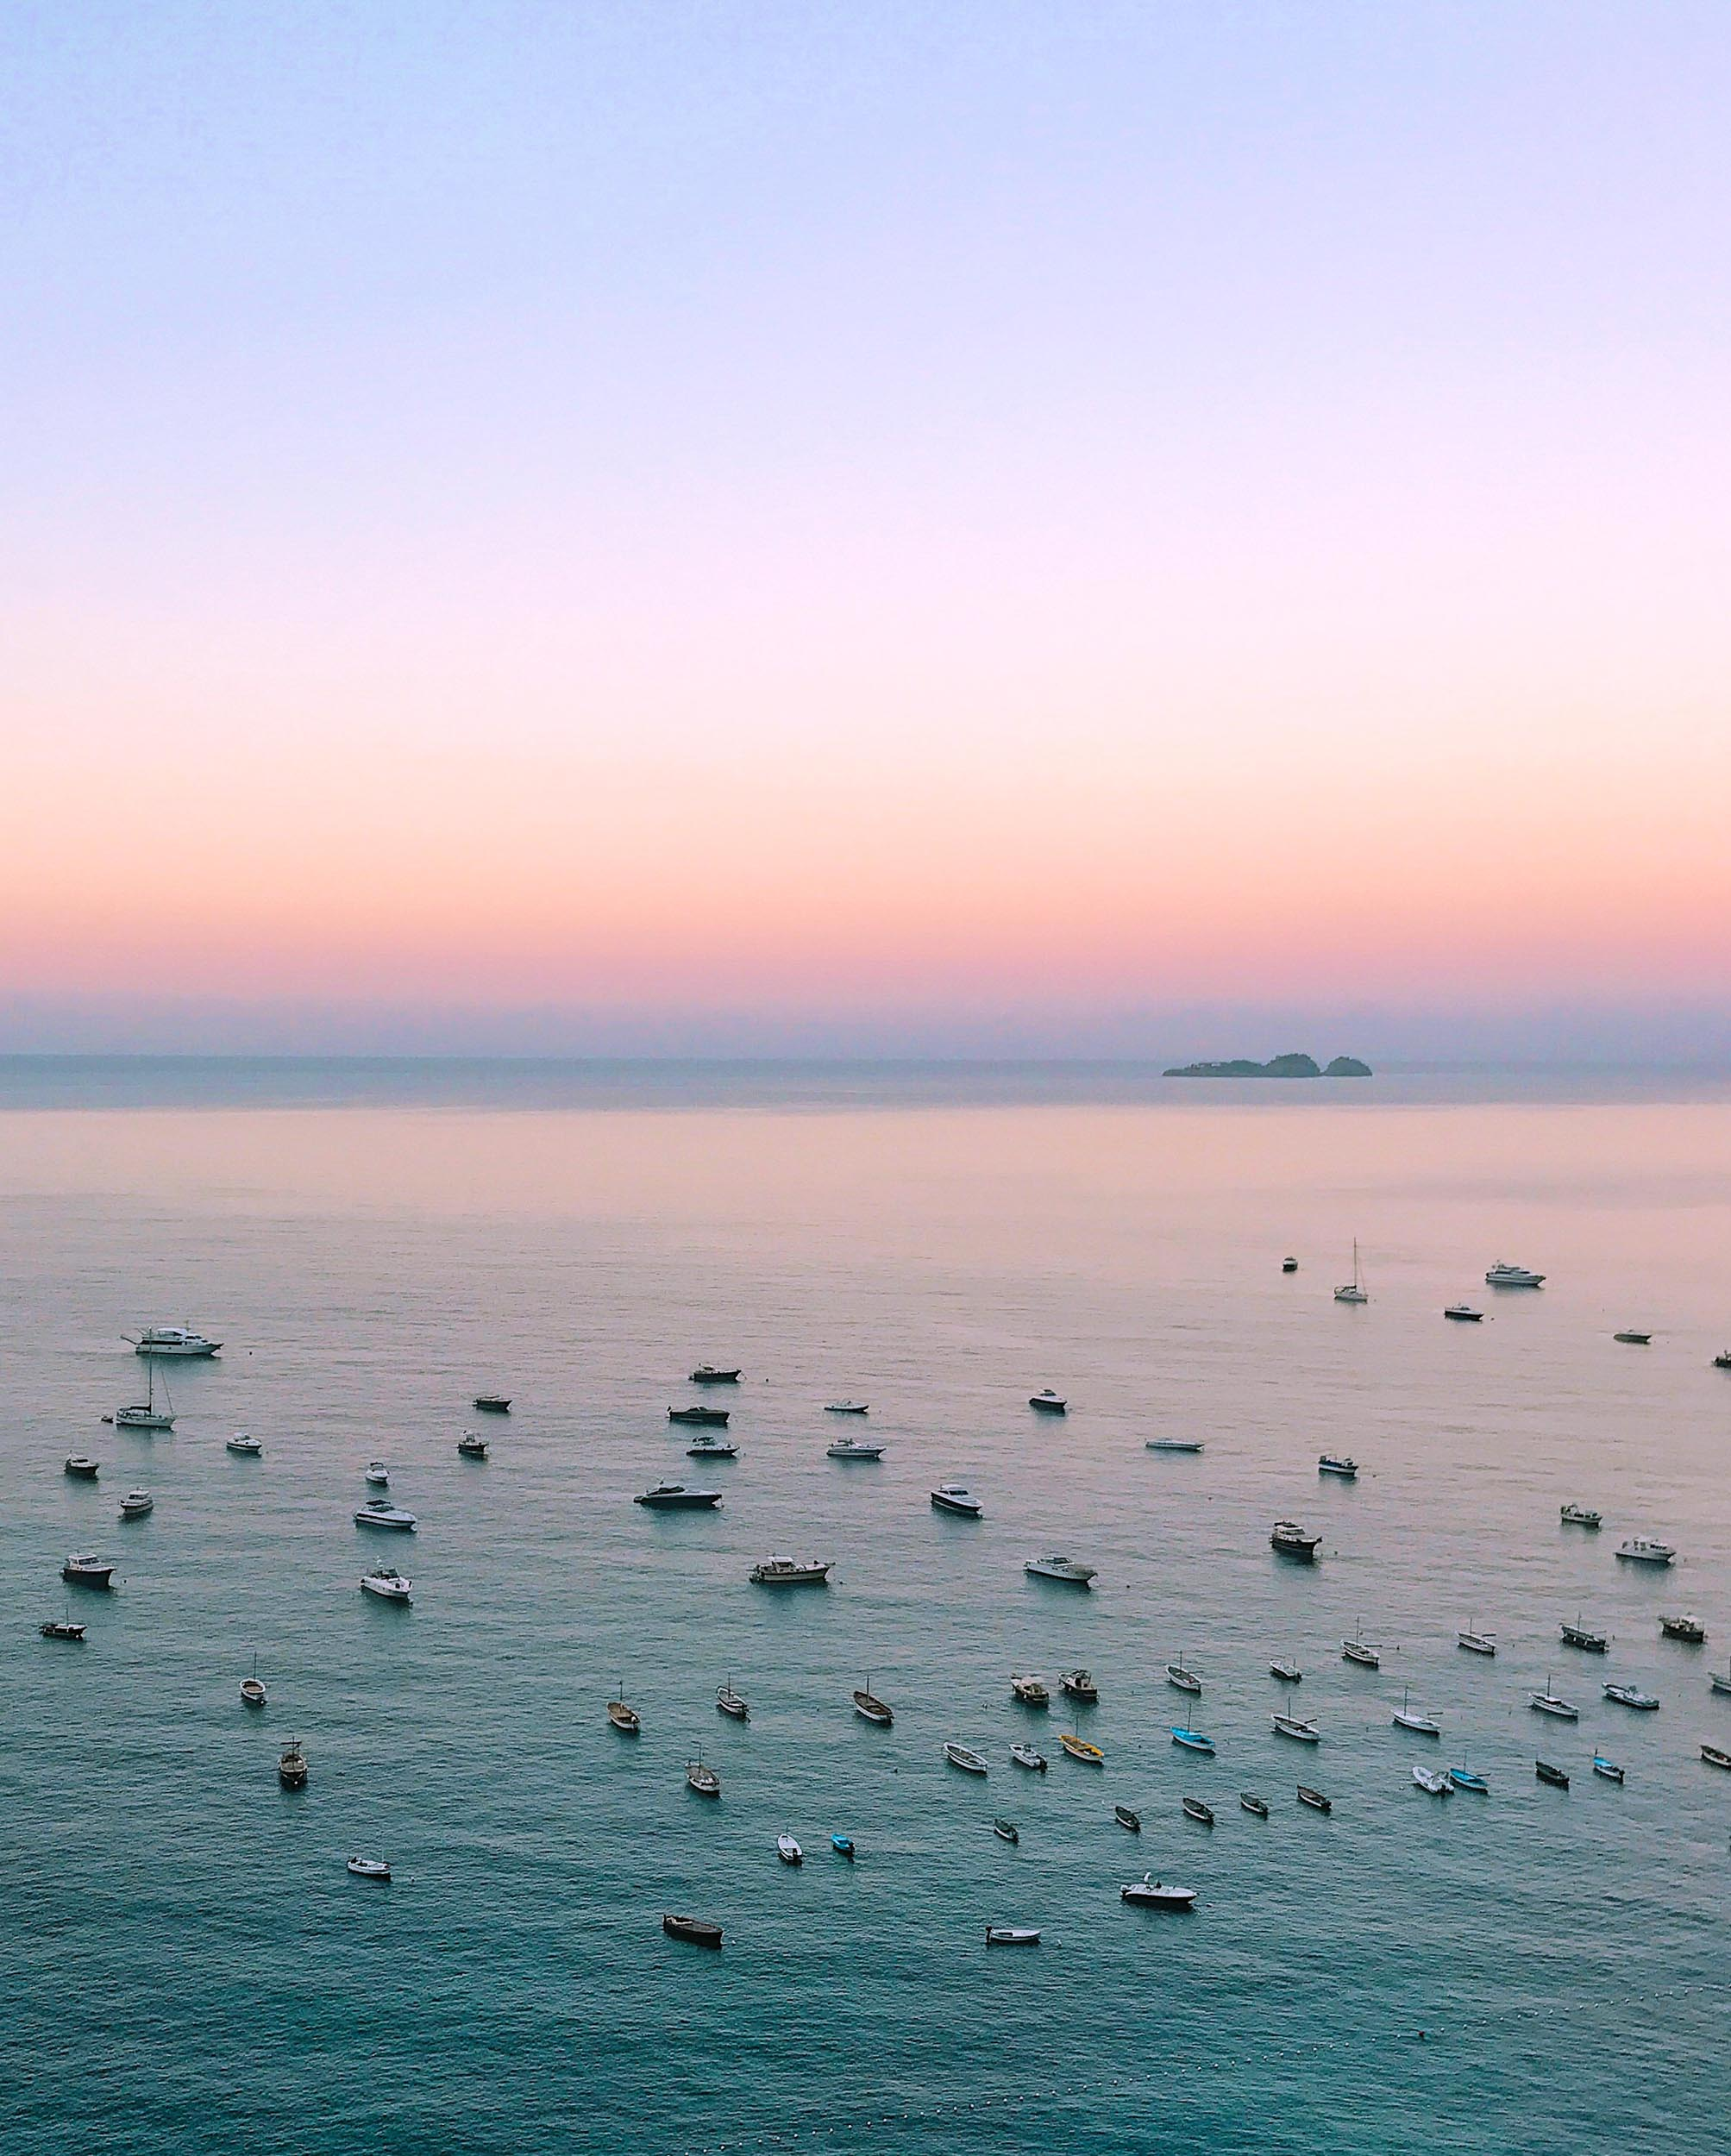 The nearest airport to Positano is the one in Naples